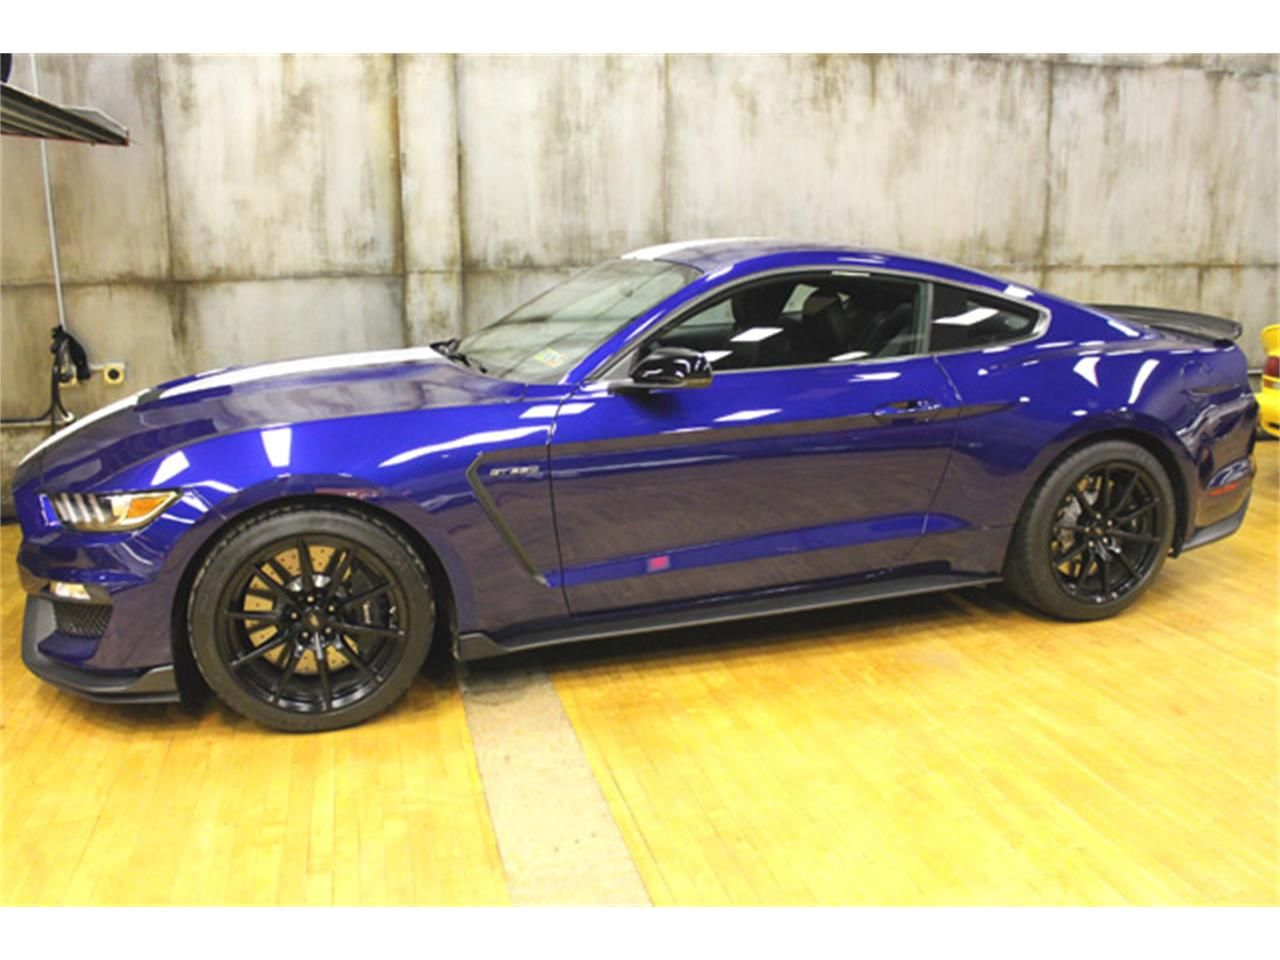 2016 Shelby Mustang Shelby, Atlantic city, Mustang shelby